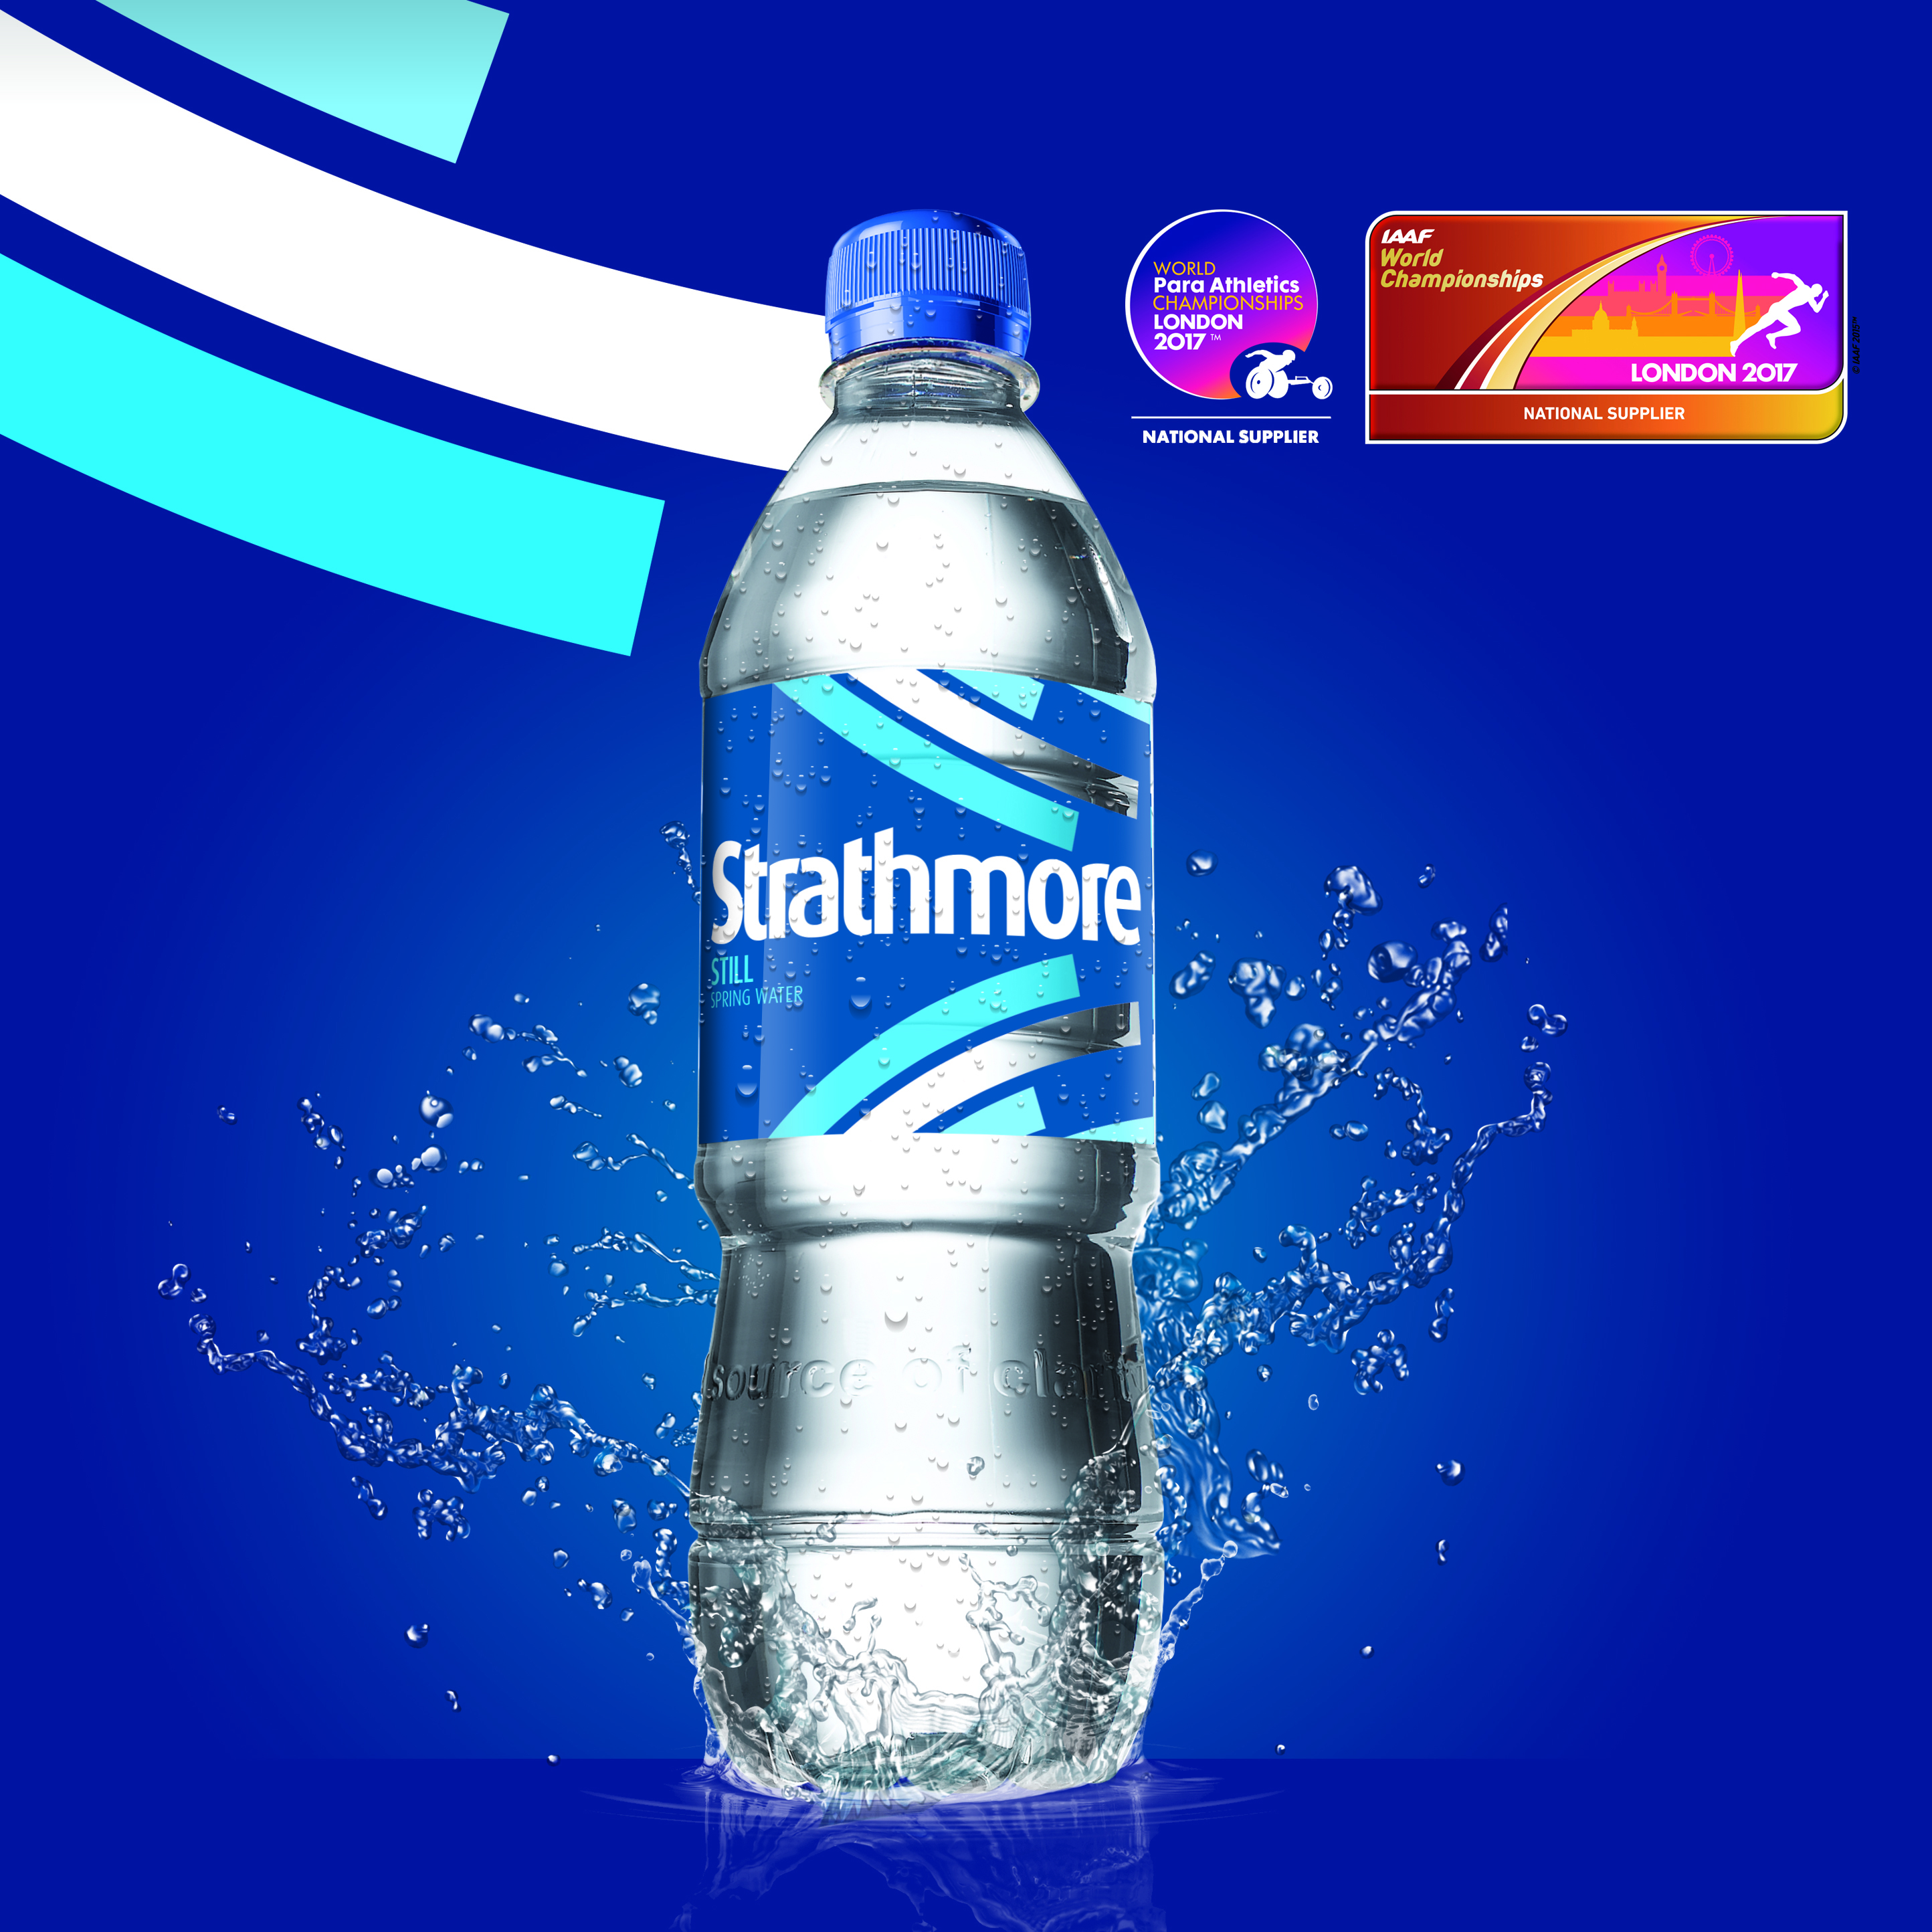 Strathmore Water announces deal to hydrate world class athletes in 2017